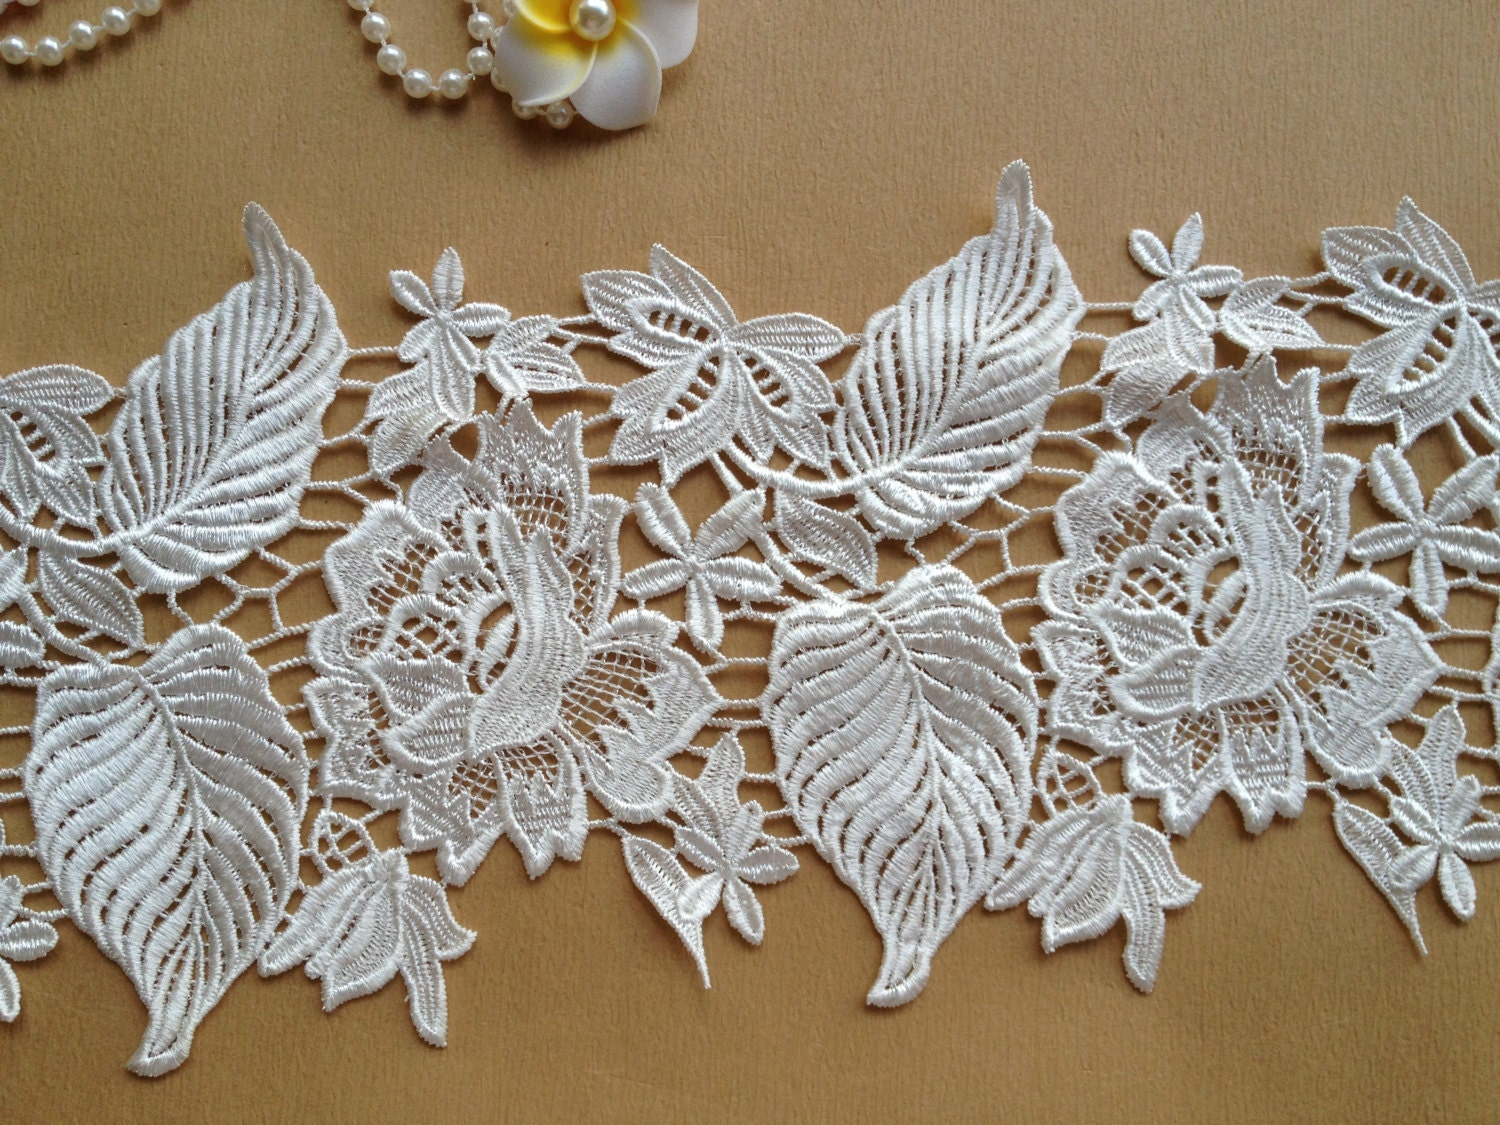 Exquisite White Lace Rose Embroidered Lace Trim Wedding Fabric